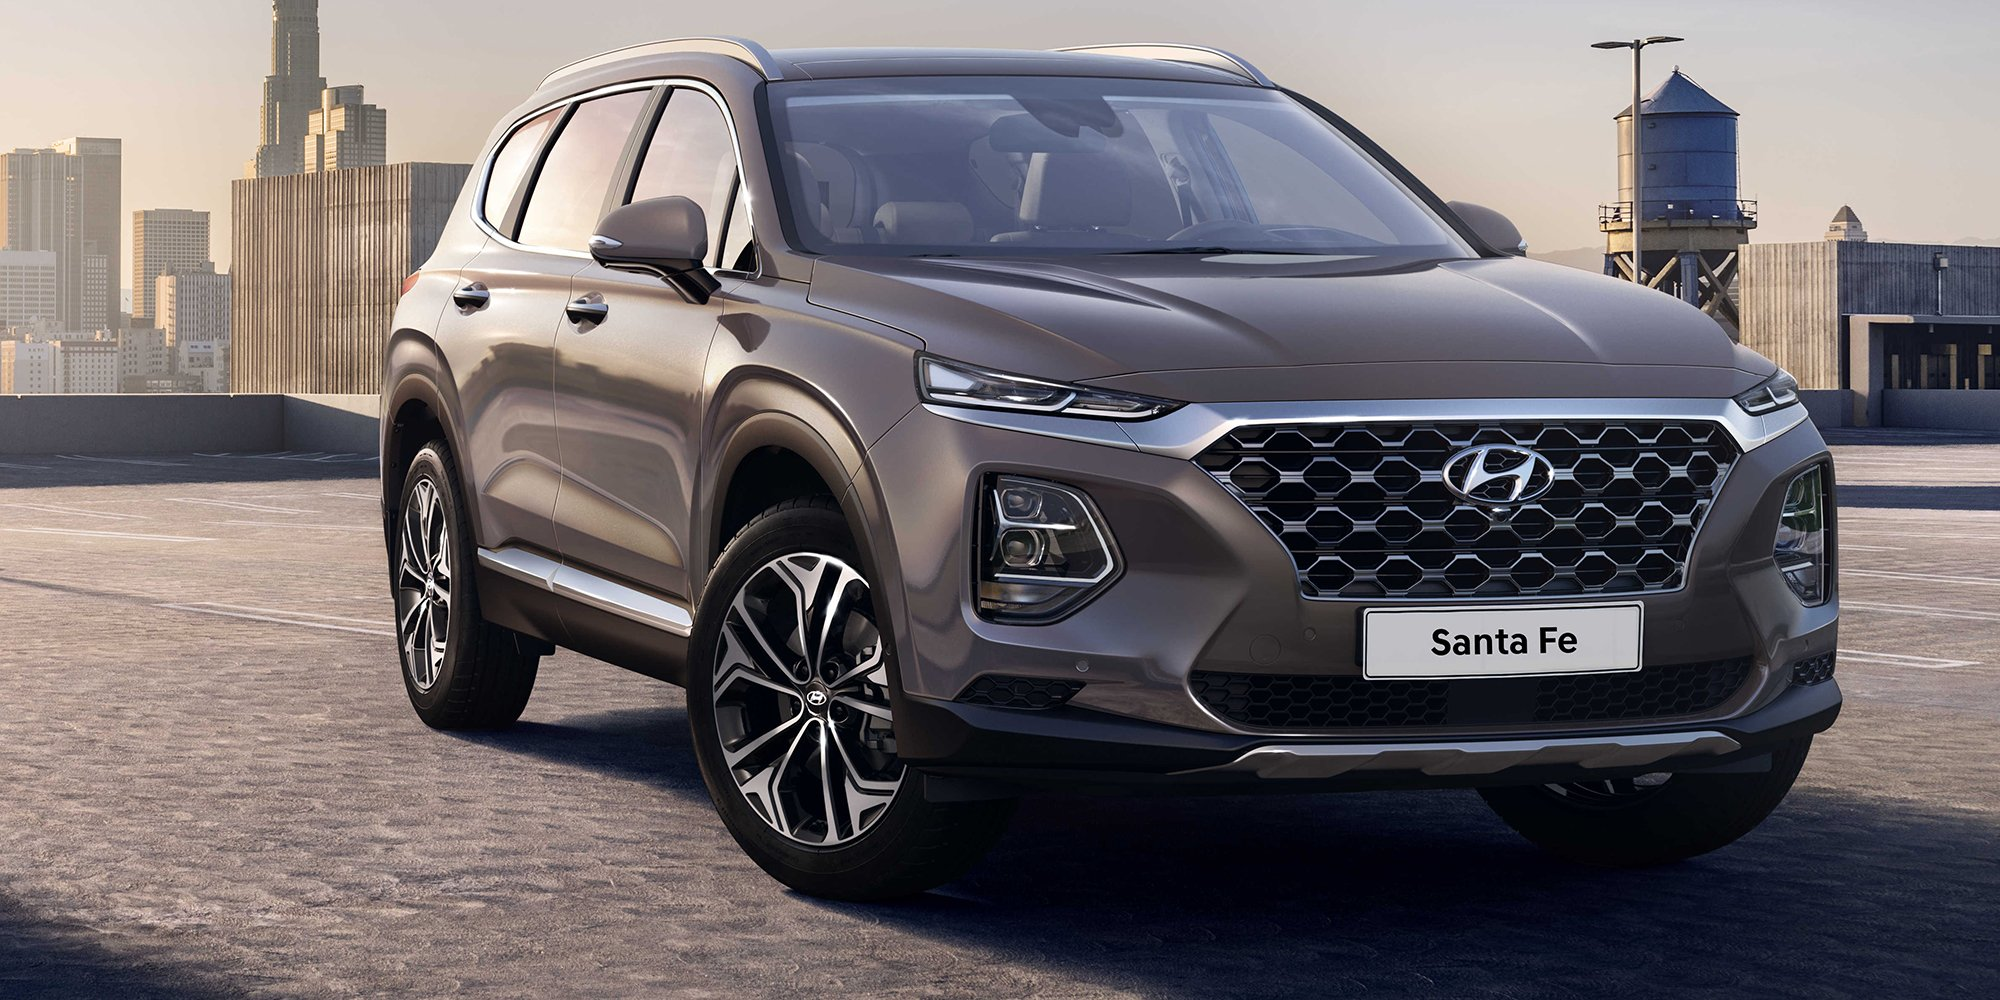 Hyundai I20 Reviews >> 2018 Hyundai Santa Fe revealed - UPDATE - Photos